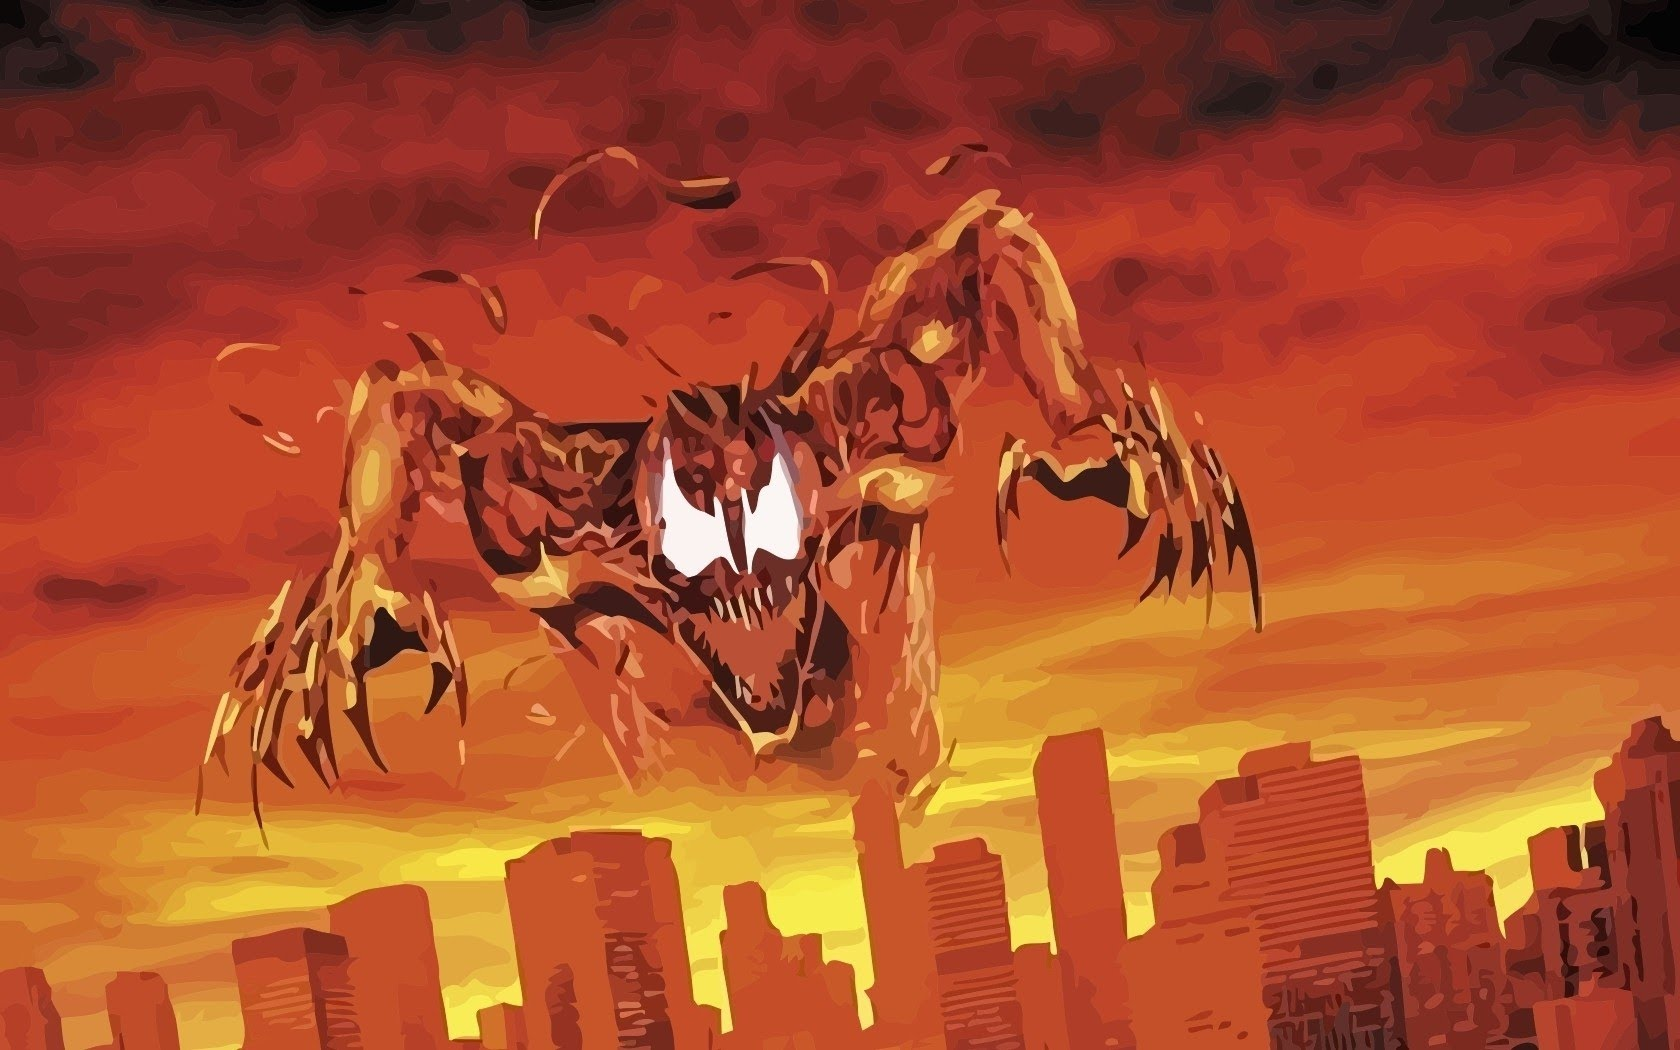 Download free carnage wallpapers for your mobile phone  top rated 1680x1050